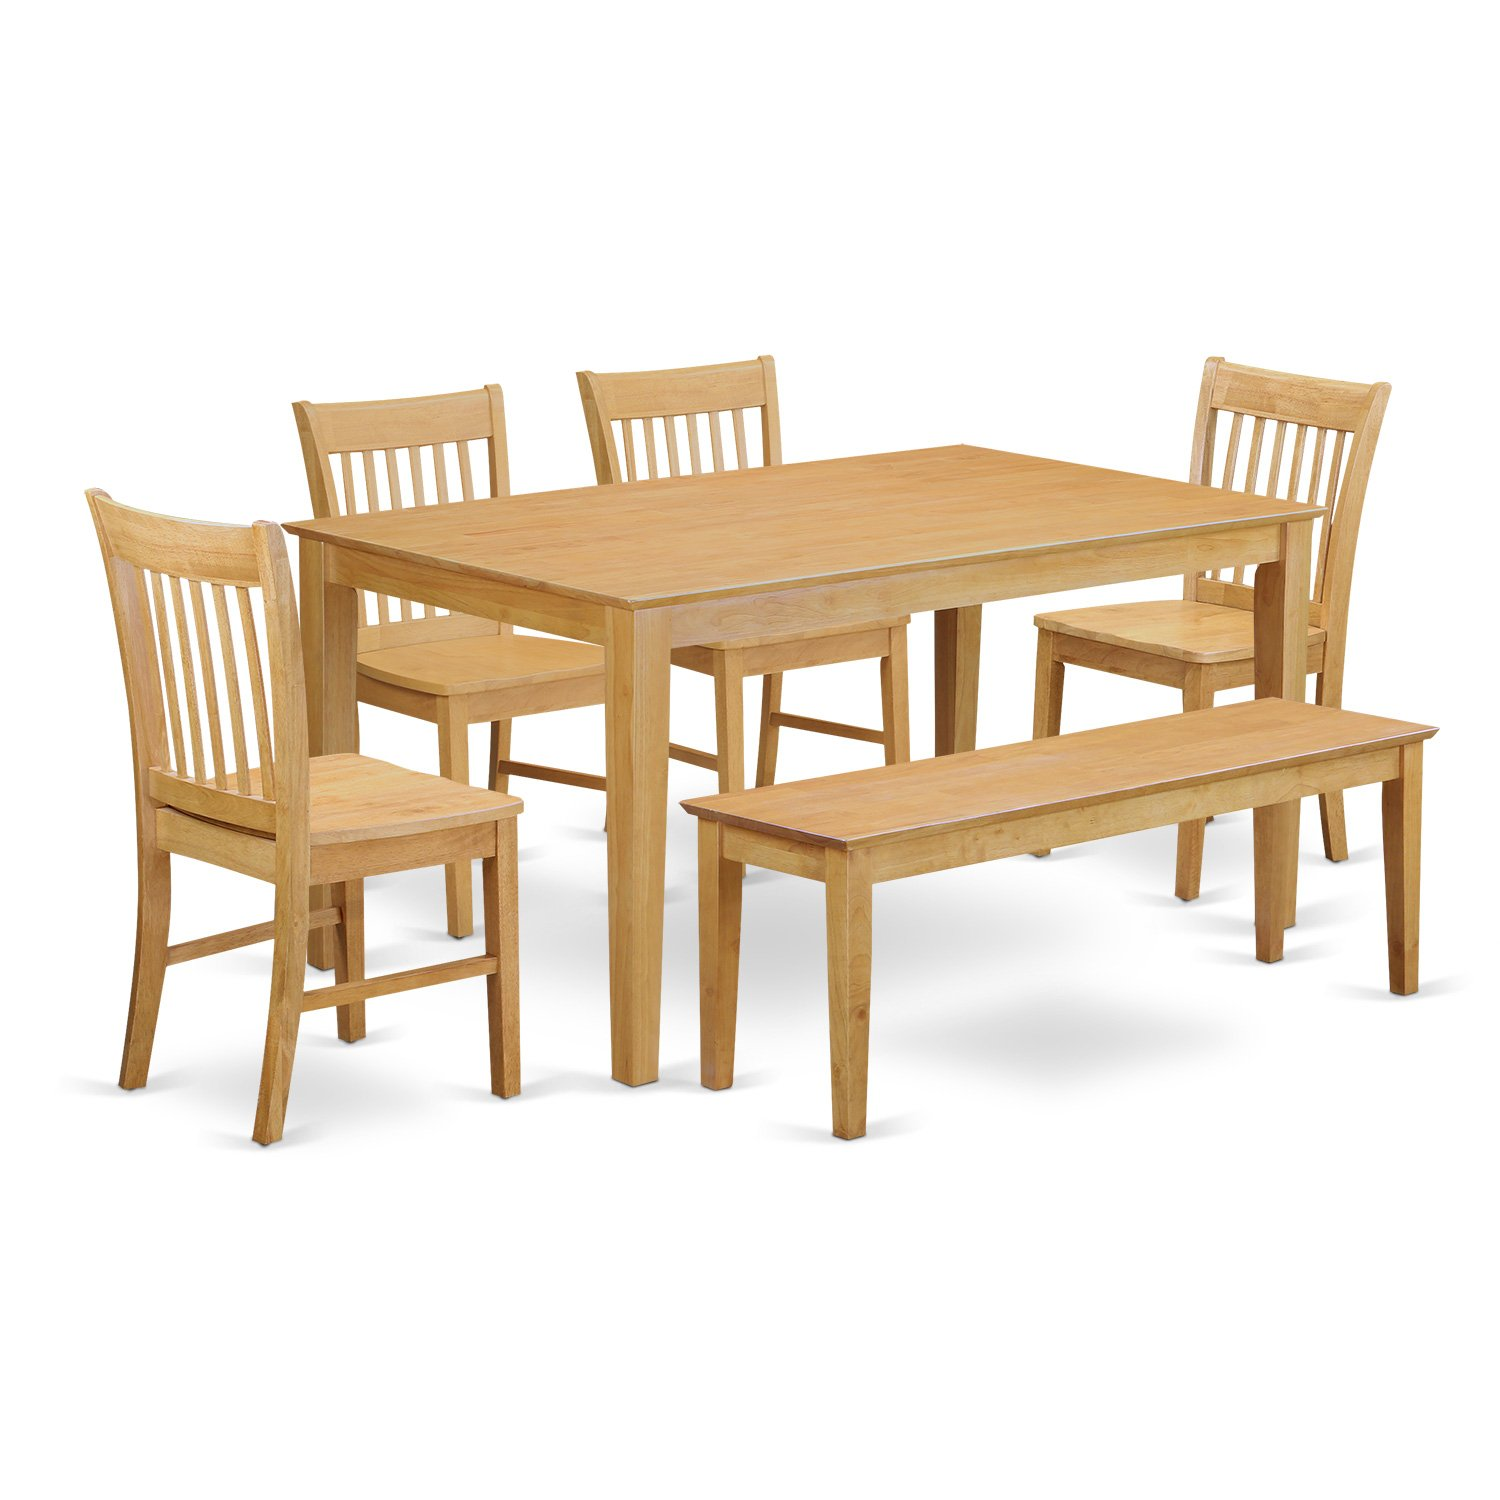 Amazon.com: East West Furniture CANO6-OAK-W 6-Piece Dining Table ...